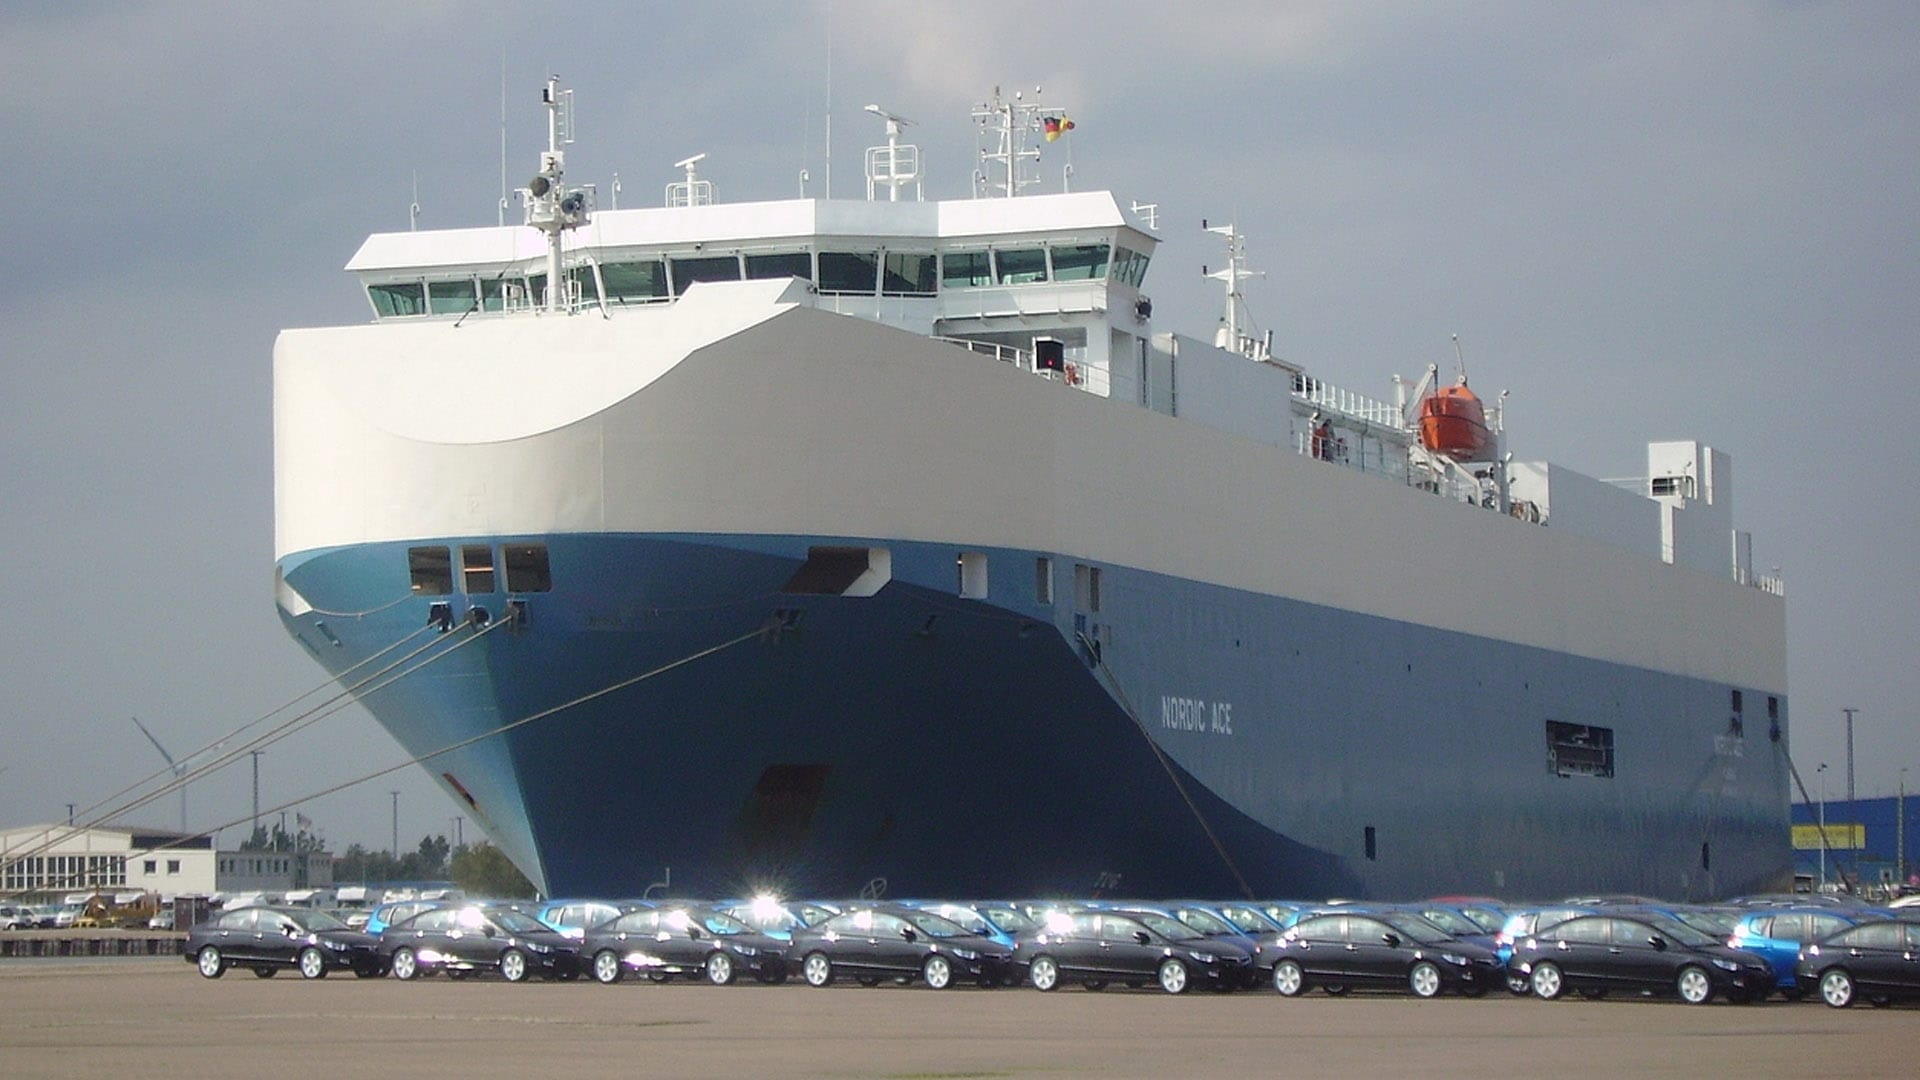 Drewry: Slow Car Carrier Recovery to Trigger More Distressed Asset Sales